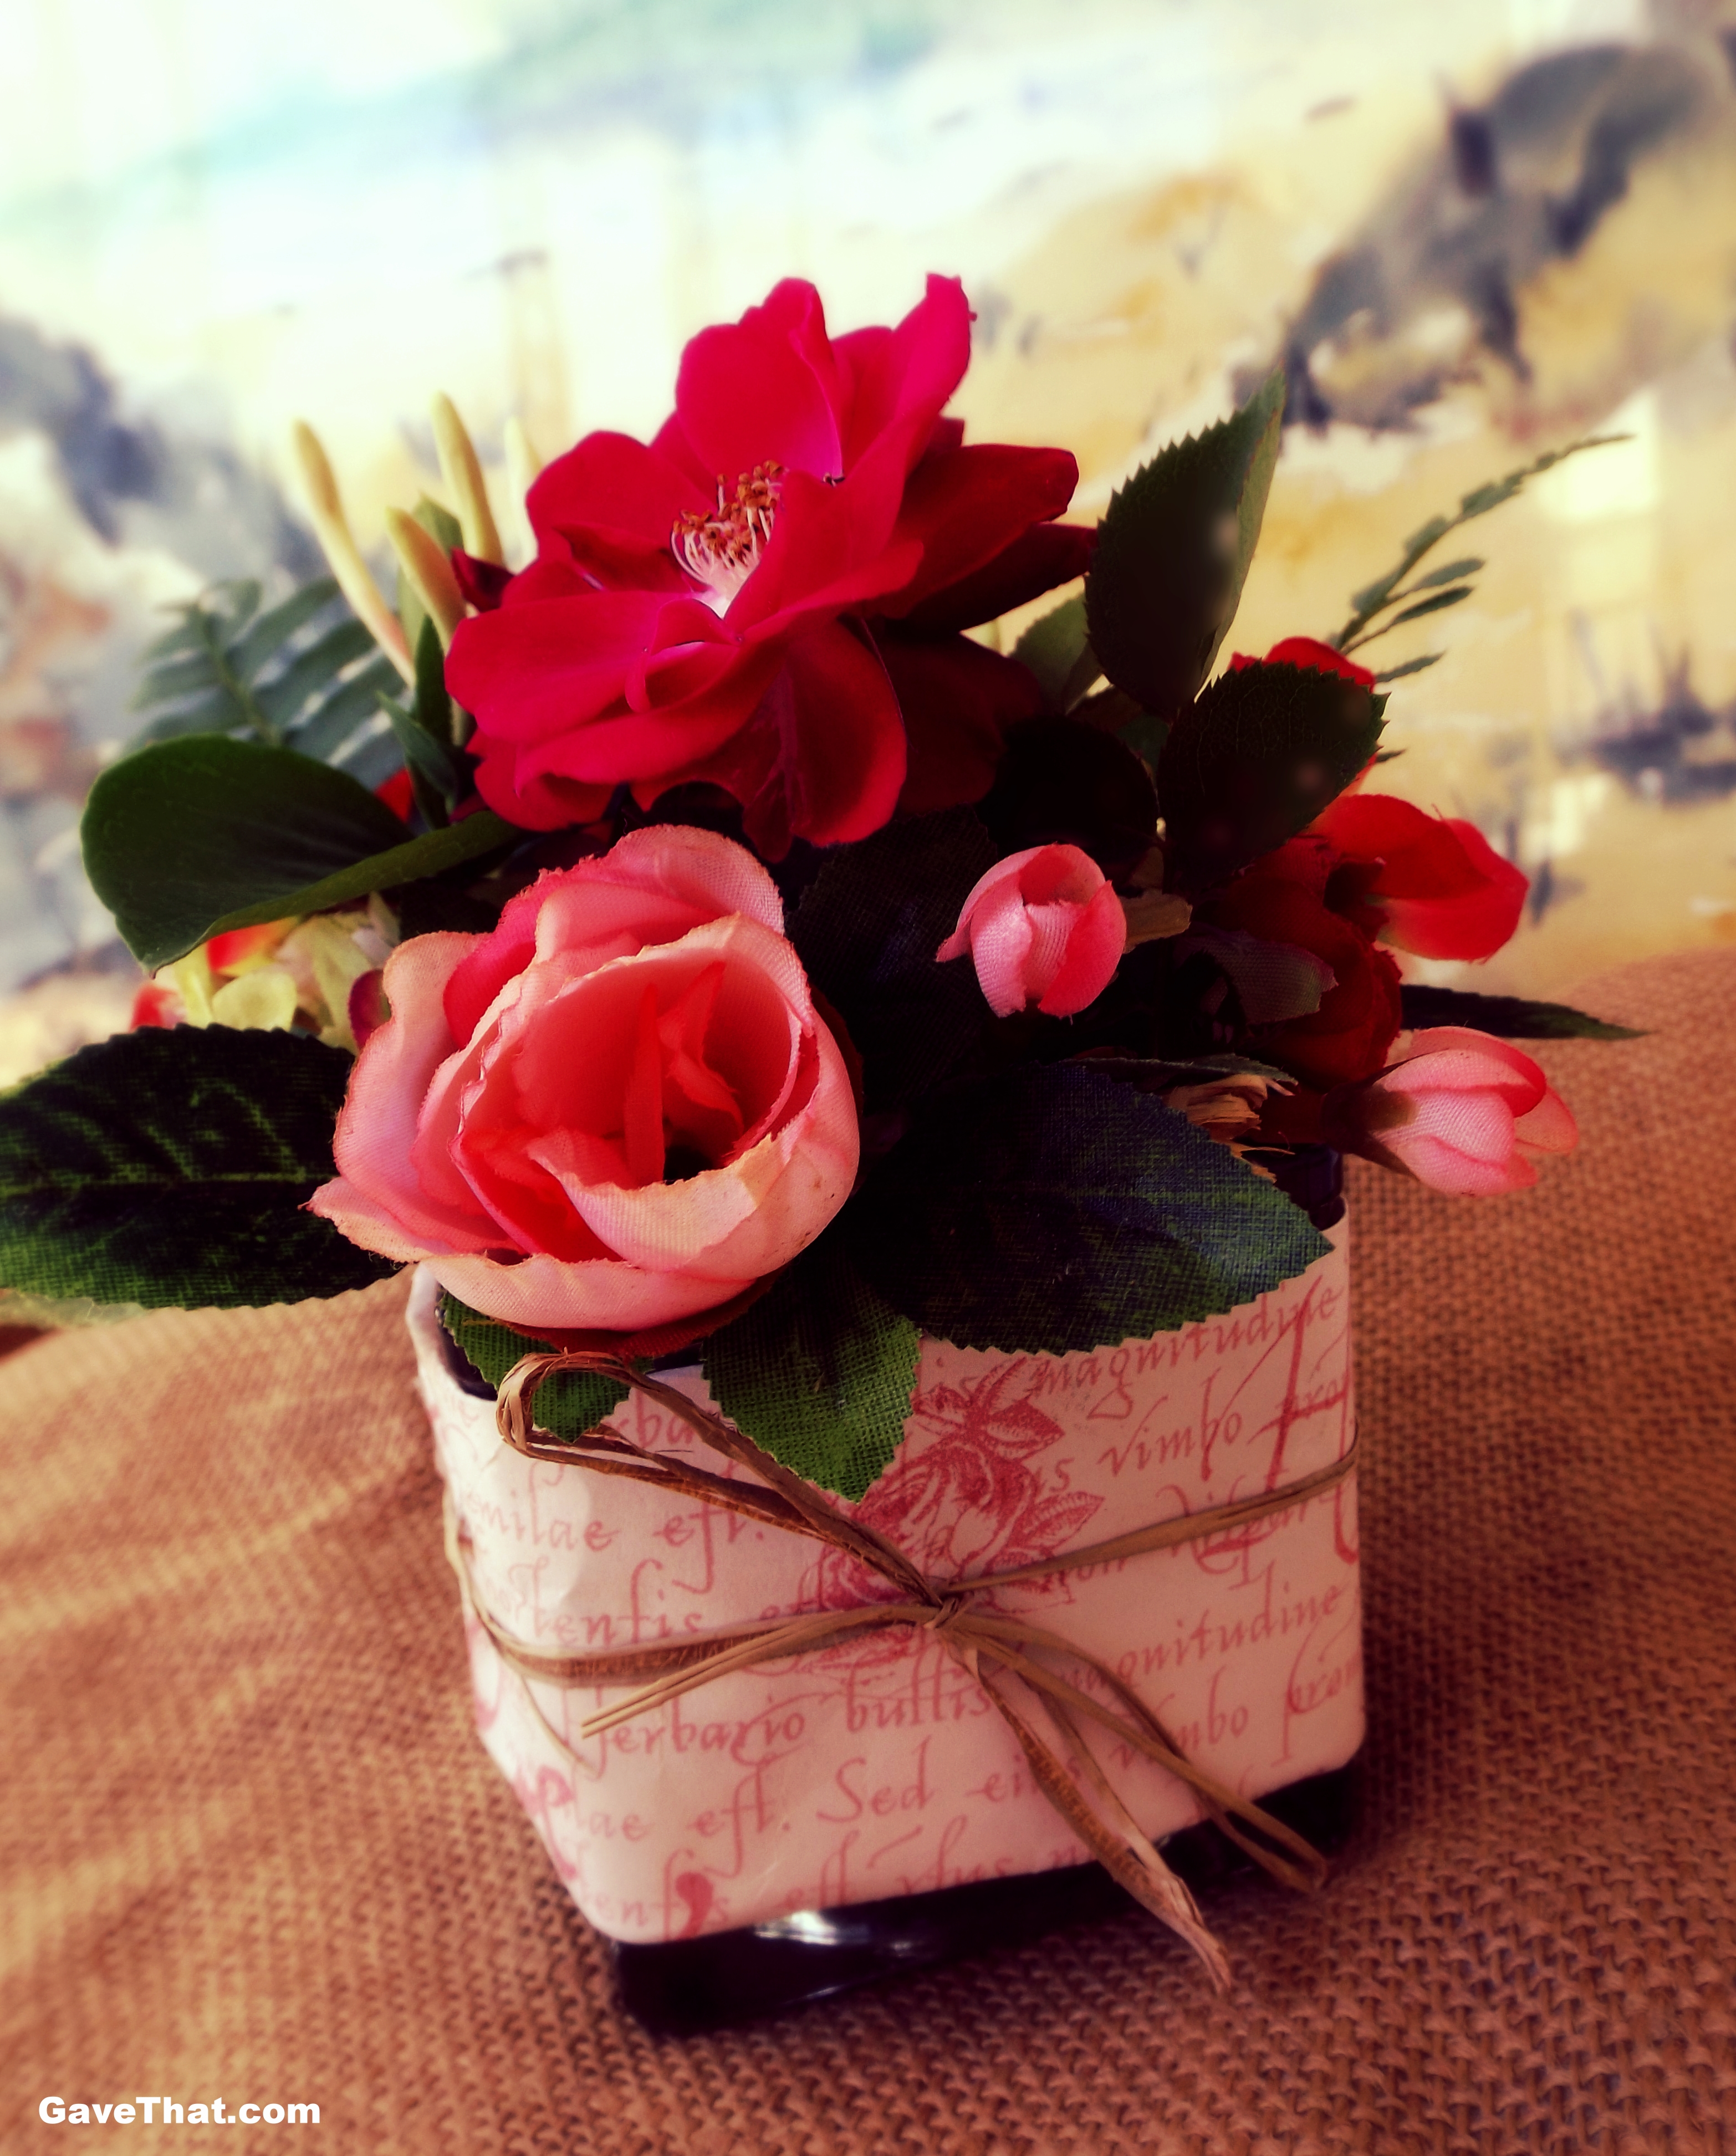 Gift Wrapped Floral Arrangement